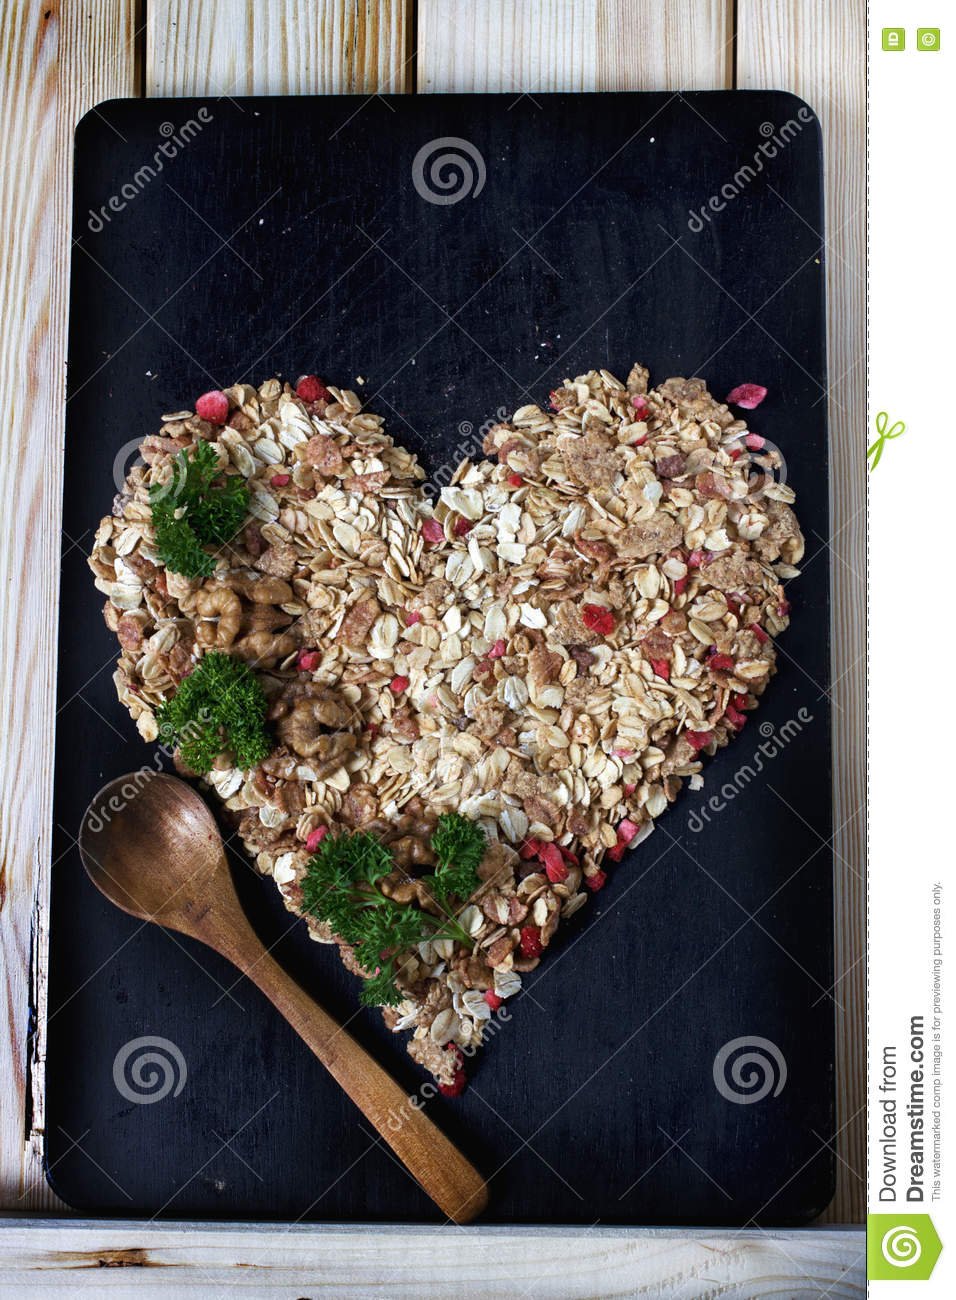 Ingredients for cooking healthy breakfast in a shape of heart. Nuts, oat flakes, dried fruits, honey, granola.